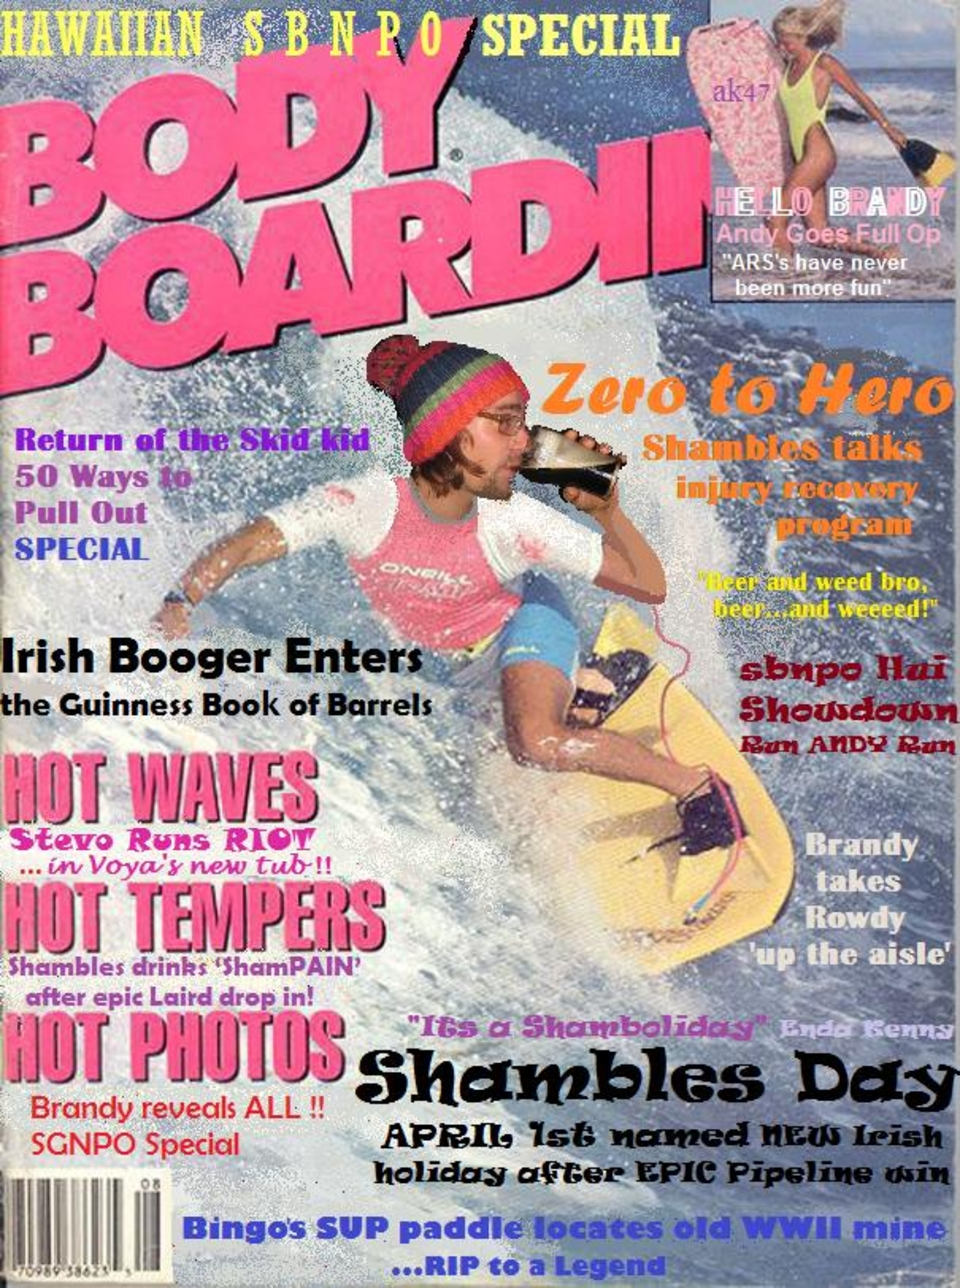 The golden years of boadyboarding? Shambles, Guinness, mag cover.